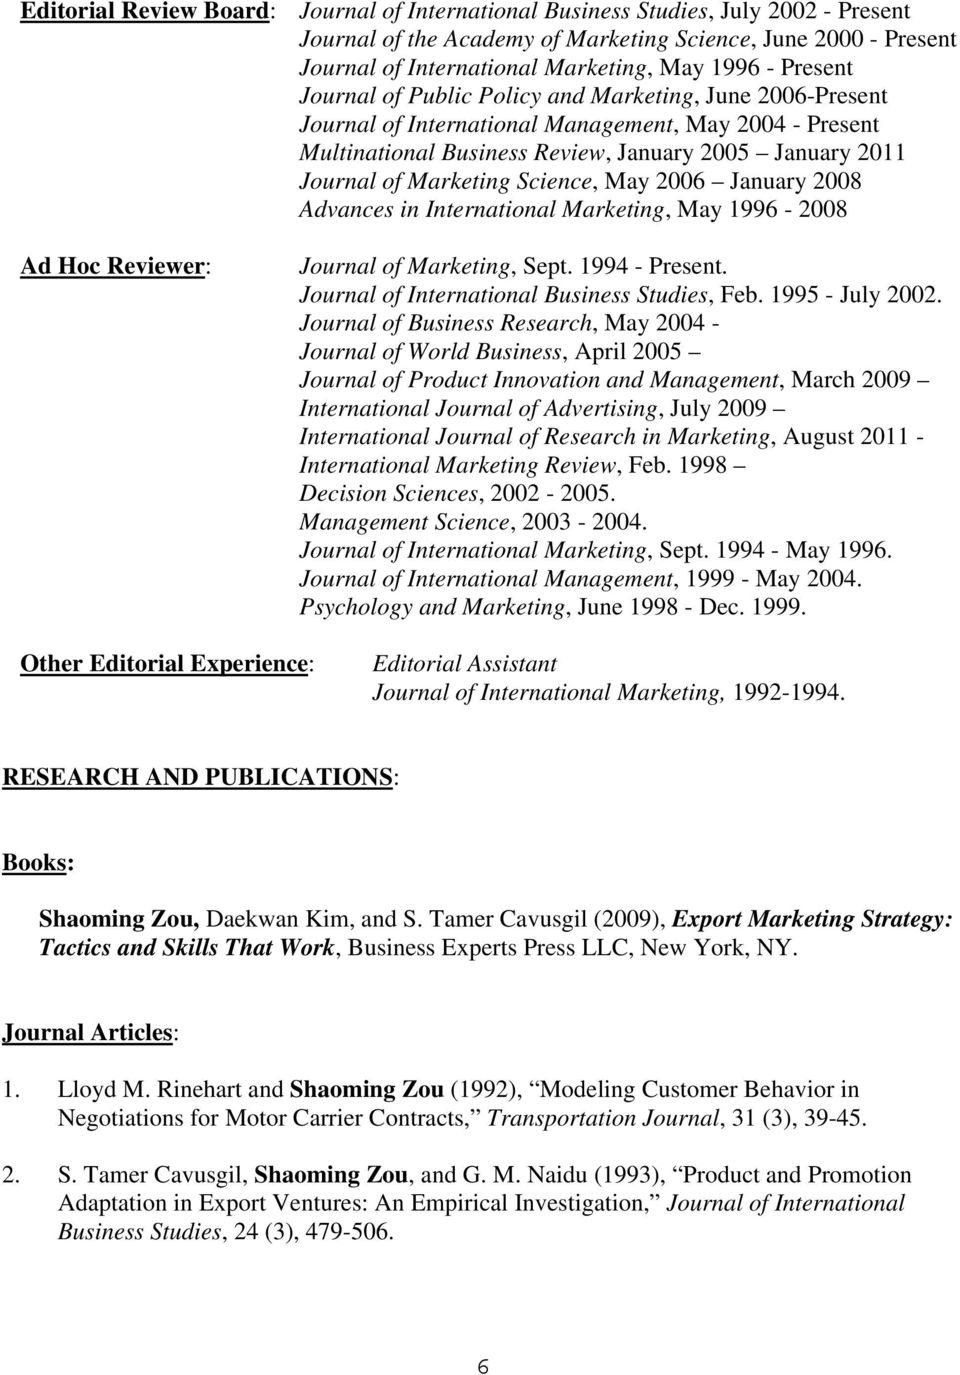 Science, May 2006 January 2008 Advances in International Marketing, May 1996-2008 Ad Hoc Reviewer: Journal of Marketing, Sept. 1994 - Present. Journal of International Business Studies, Feb.